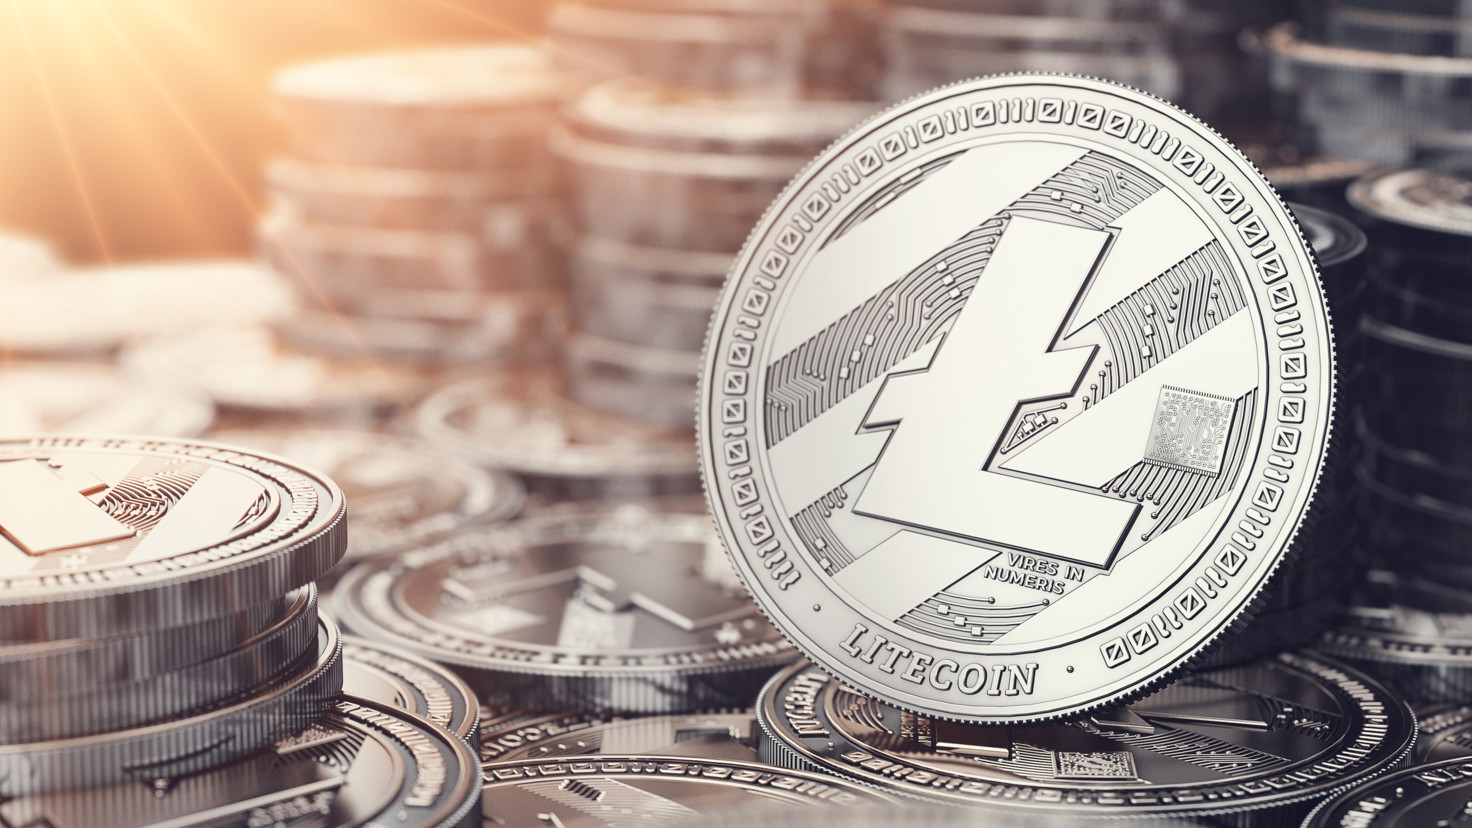 Why Litecoin price is good for investment?